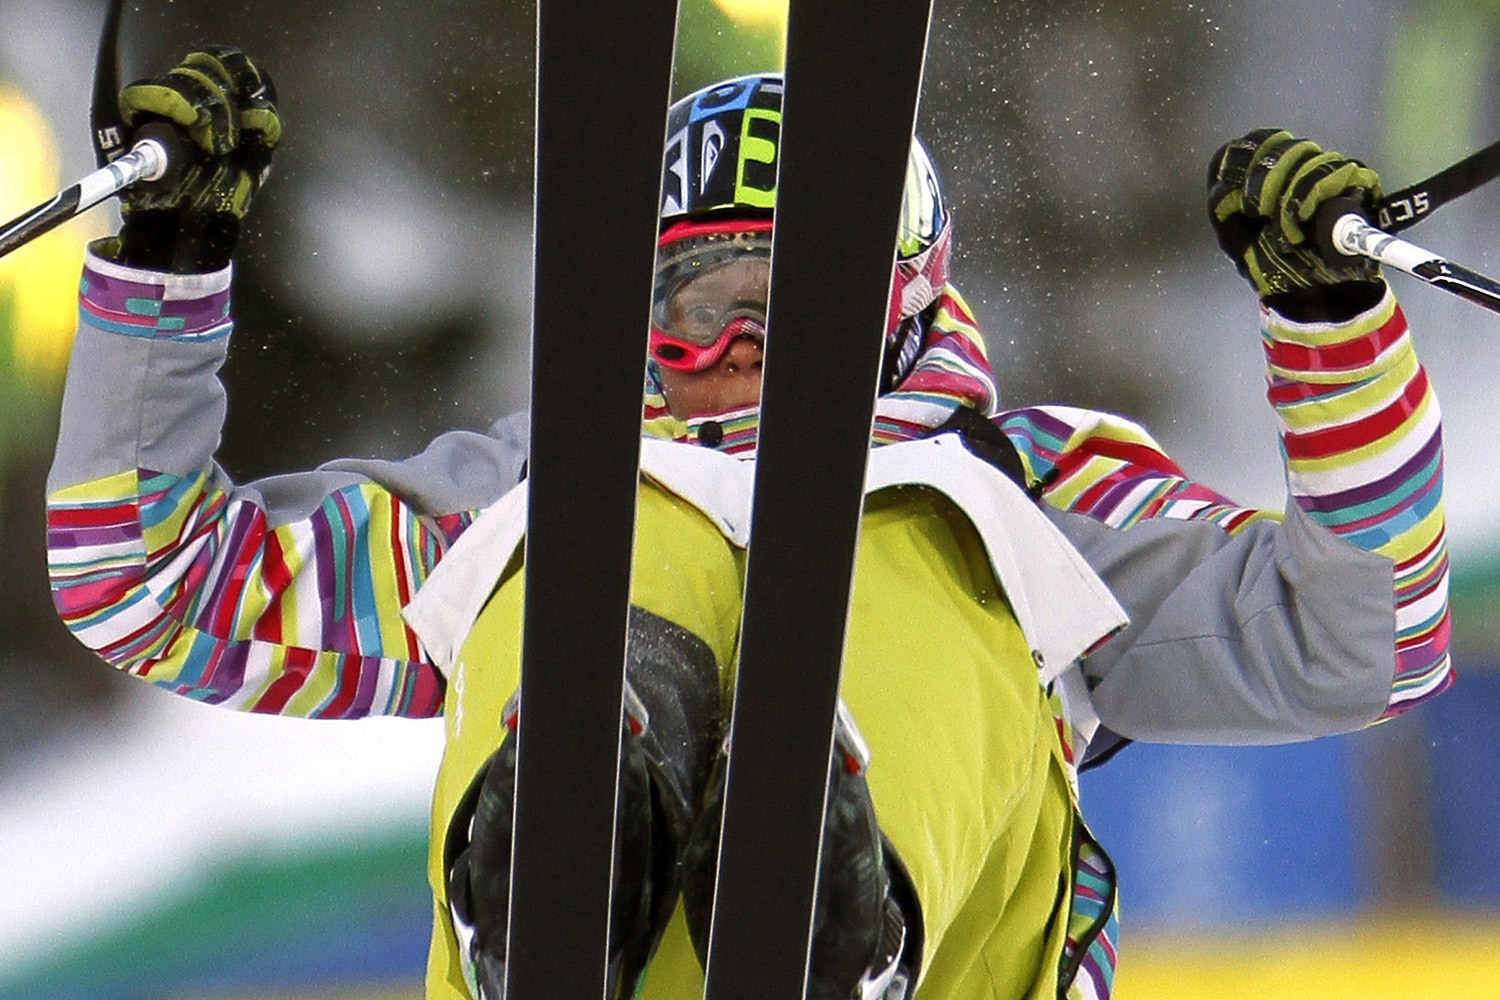 February 4, 2012. Yulia Galysheva, of Kazakhstan, flips during the women's duel moguls qualifications at the World Cup freestyle skiing competition at Deer Valley Resort in Park City, Utah.